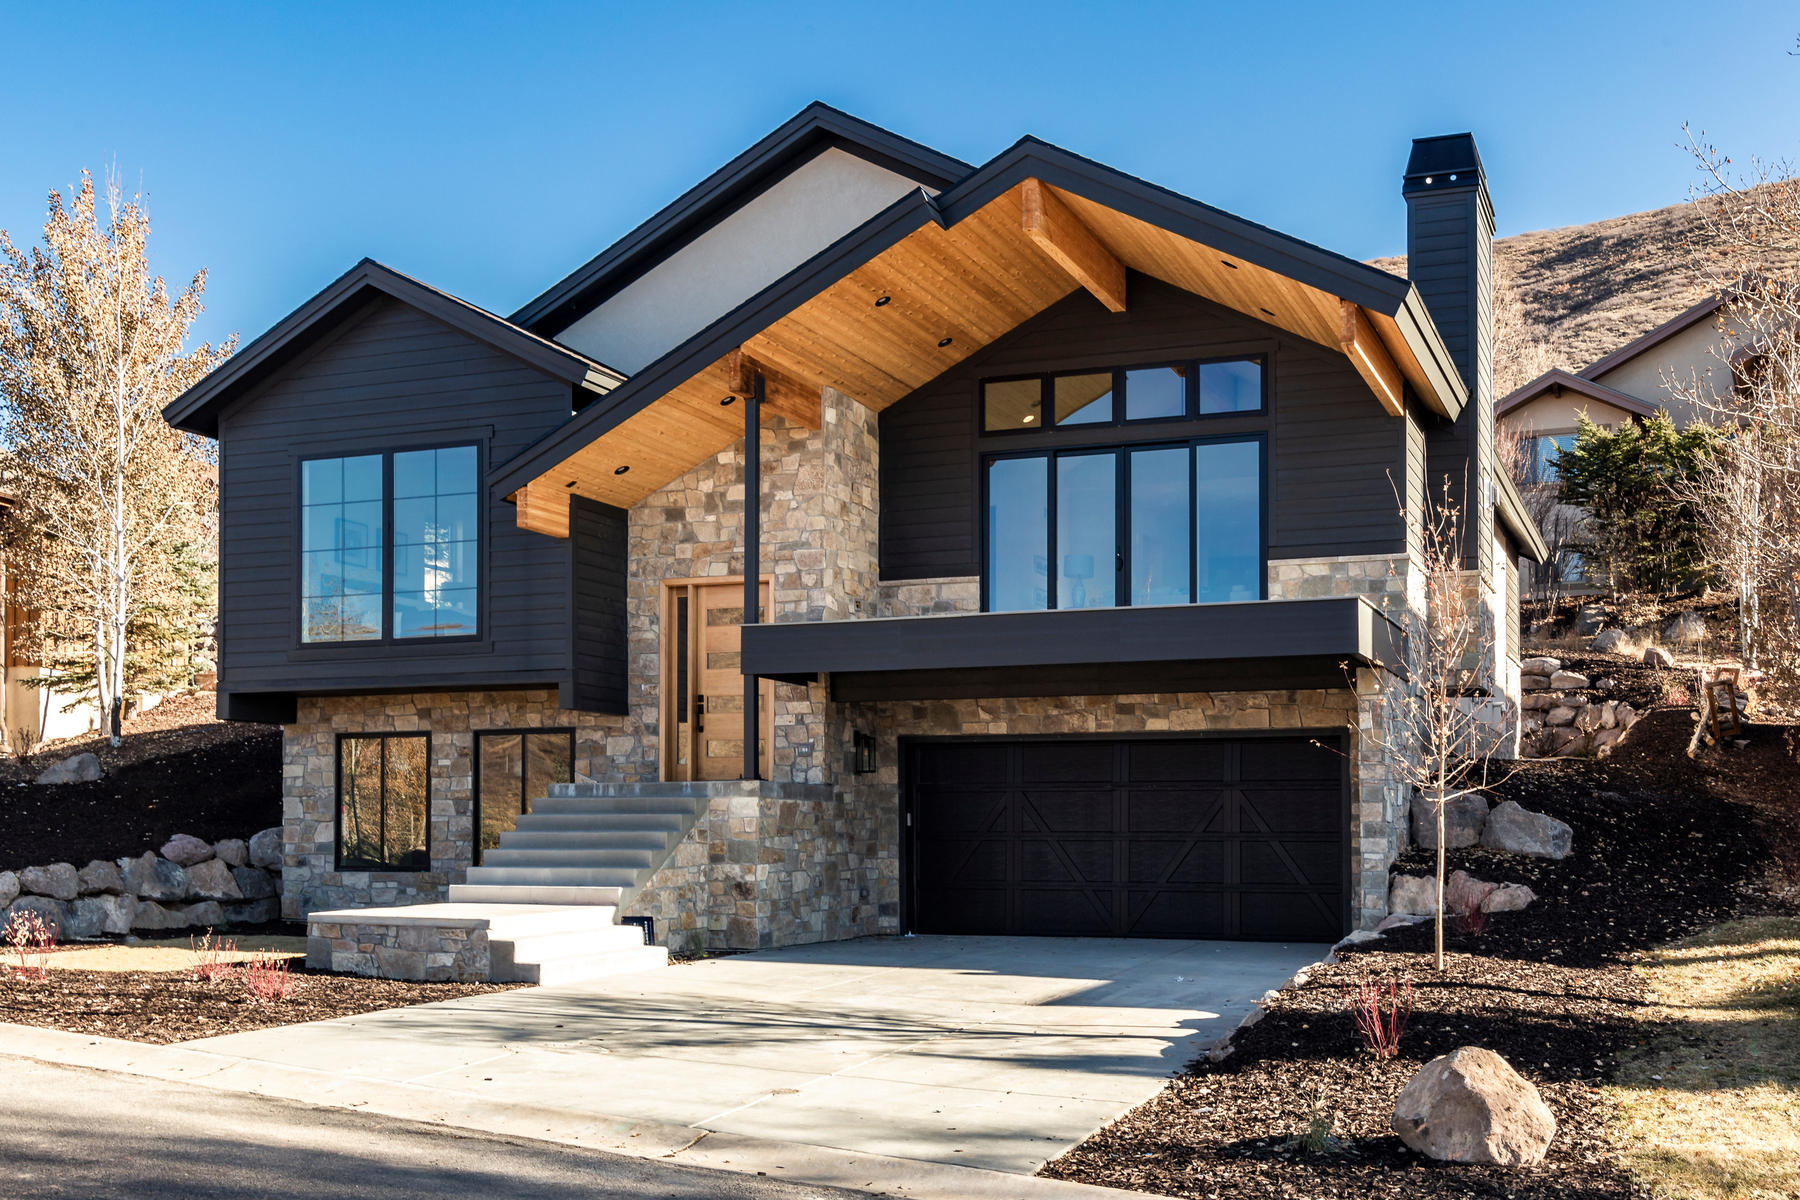 Single Family Homes for Sale at Scandinavian Inspired Modern New Construction with Sweeping Jordanelle Views 12328 N Ross Creek Drive, Kamas, Utah 84036 United States